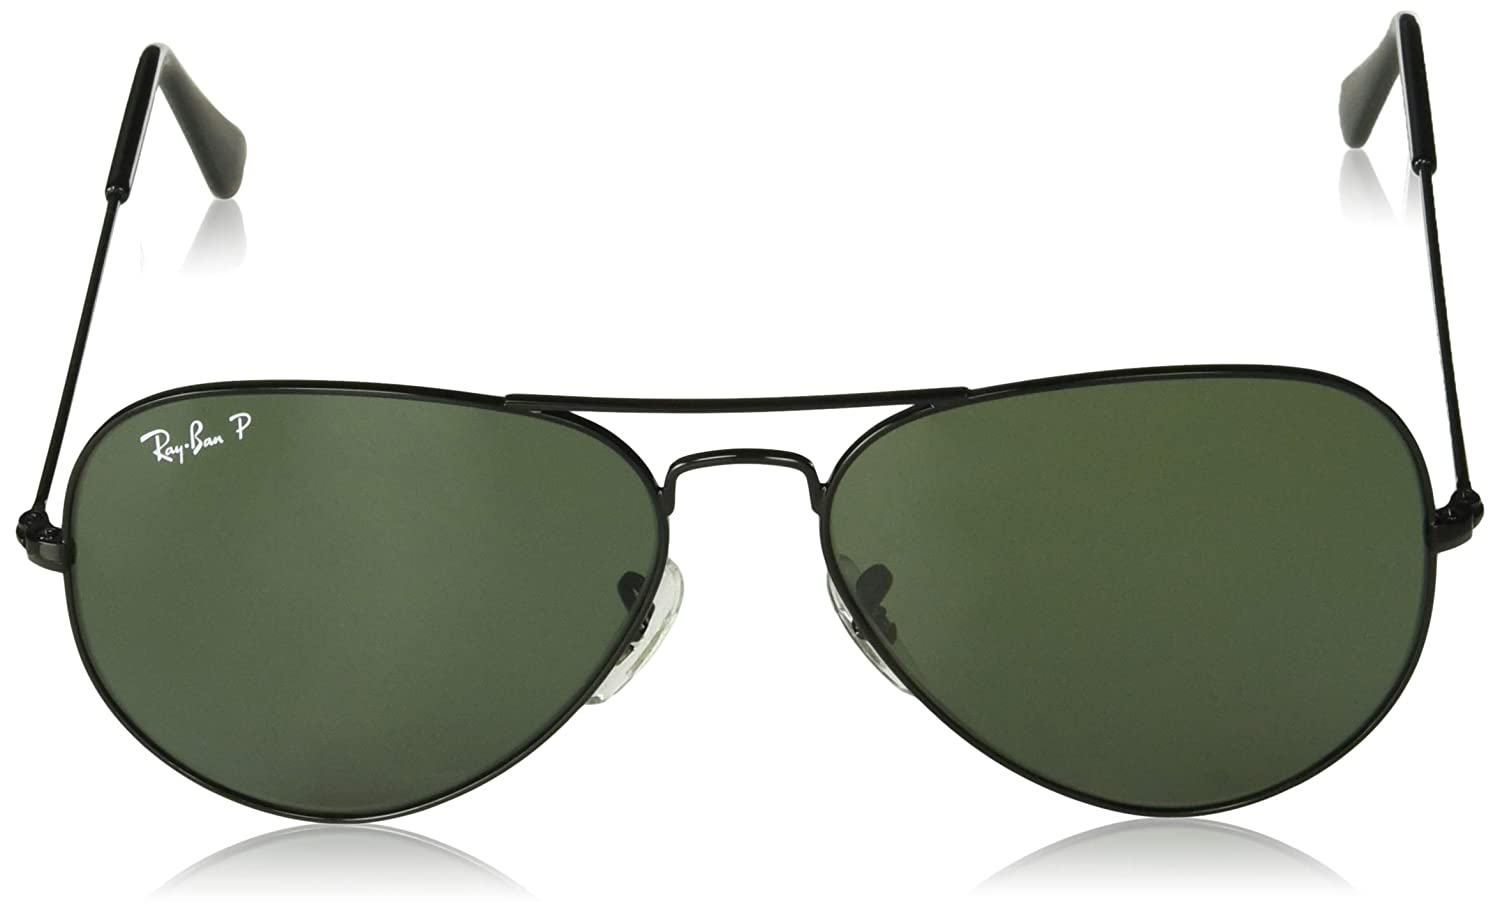 Ray-Ban- Gafas de Sol AVIATOR MOD, 002: Black, One Size: Amazon.es: Ropa y accesorios